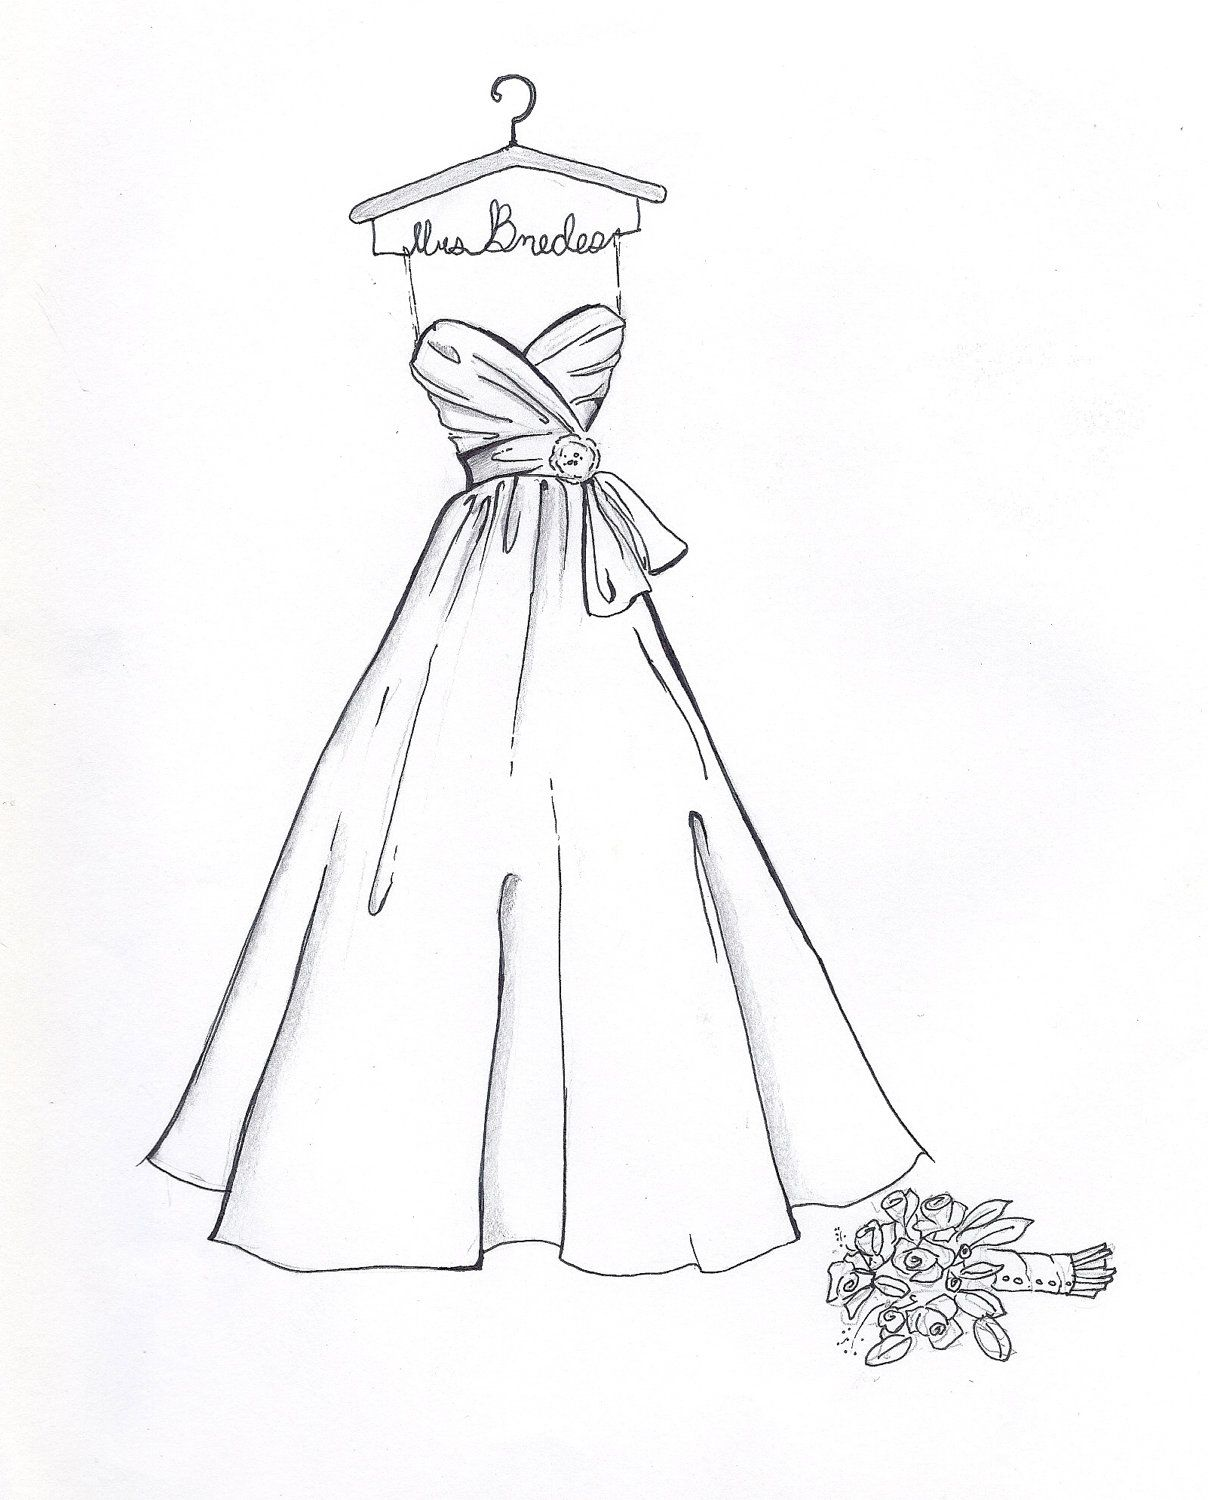 Custom Wedding Dress Sketch | Pinterest | Wedding dress sketches ...